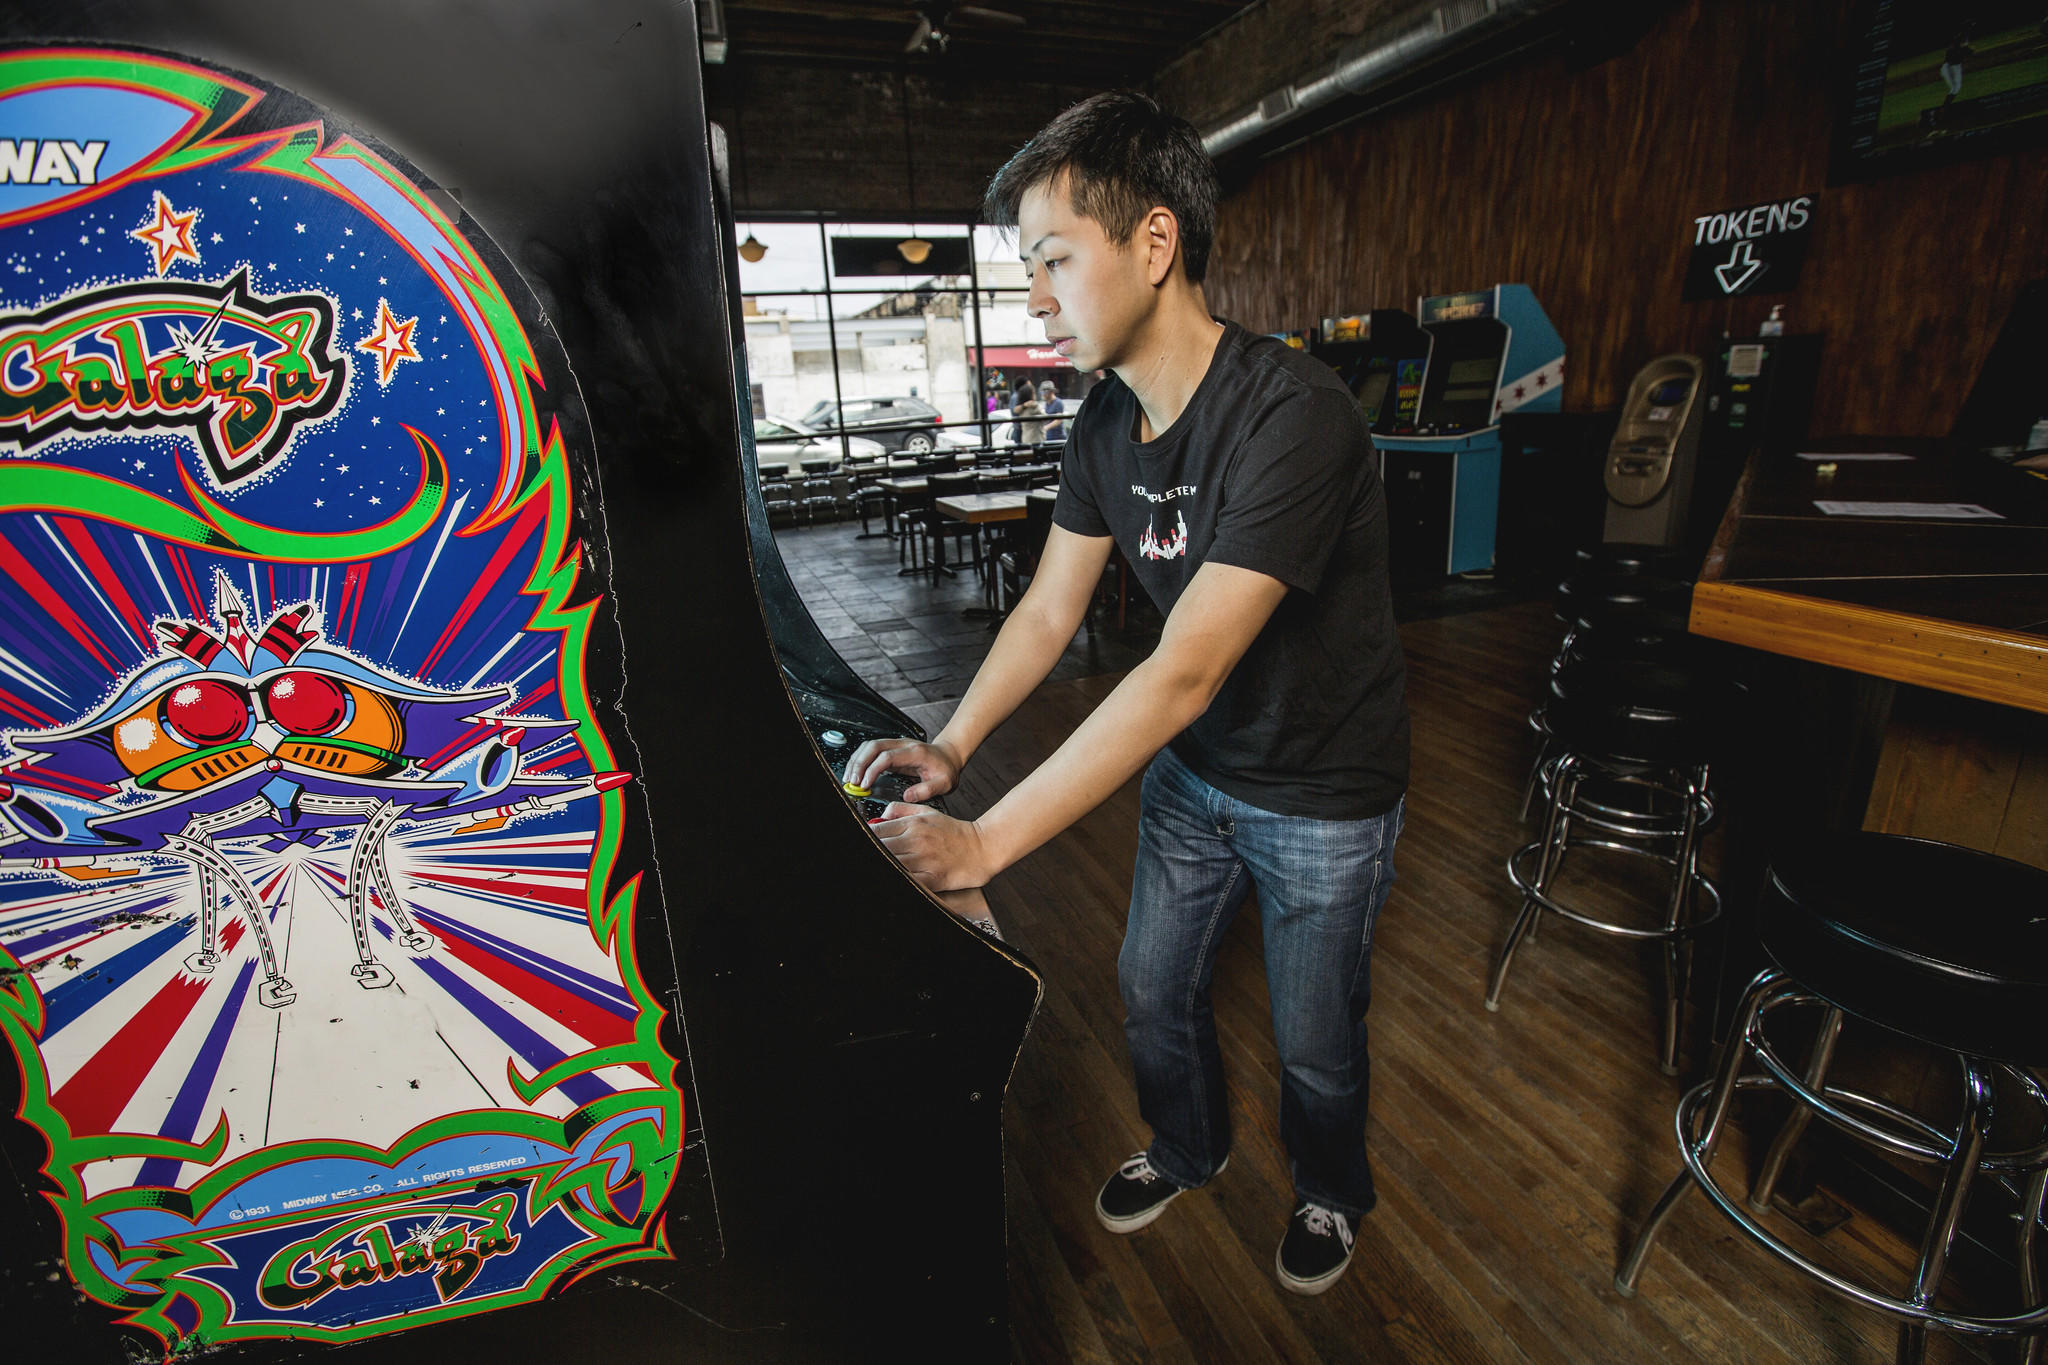 Ed Rhee, who currently holds the No. 2 world record for Galaga, at Emporium. ( Lenny Gilmore / RedEye )